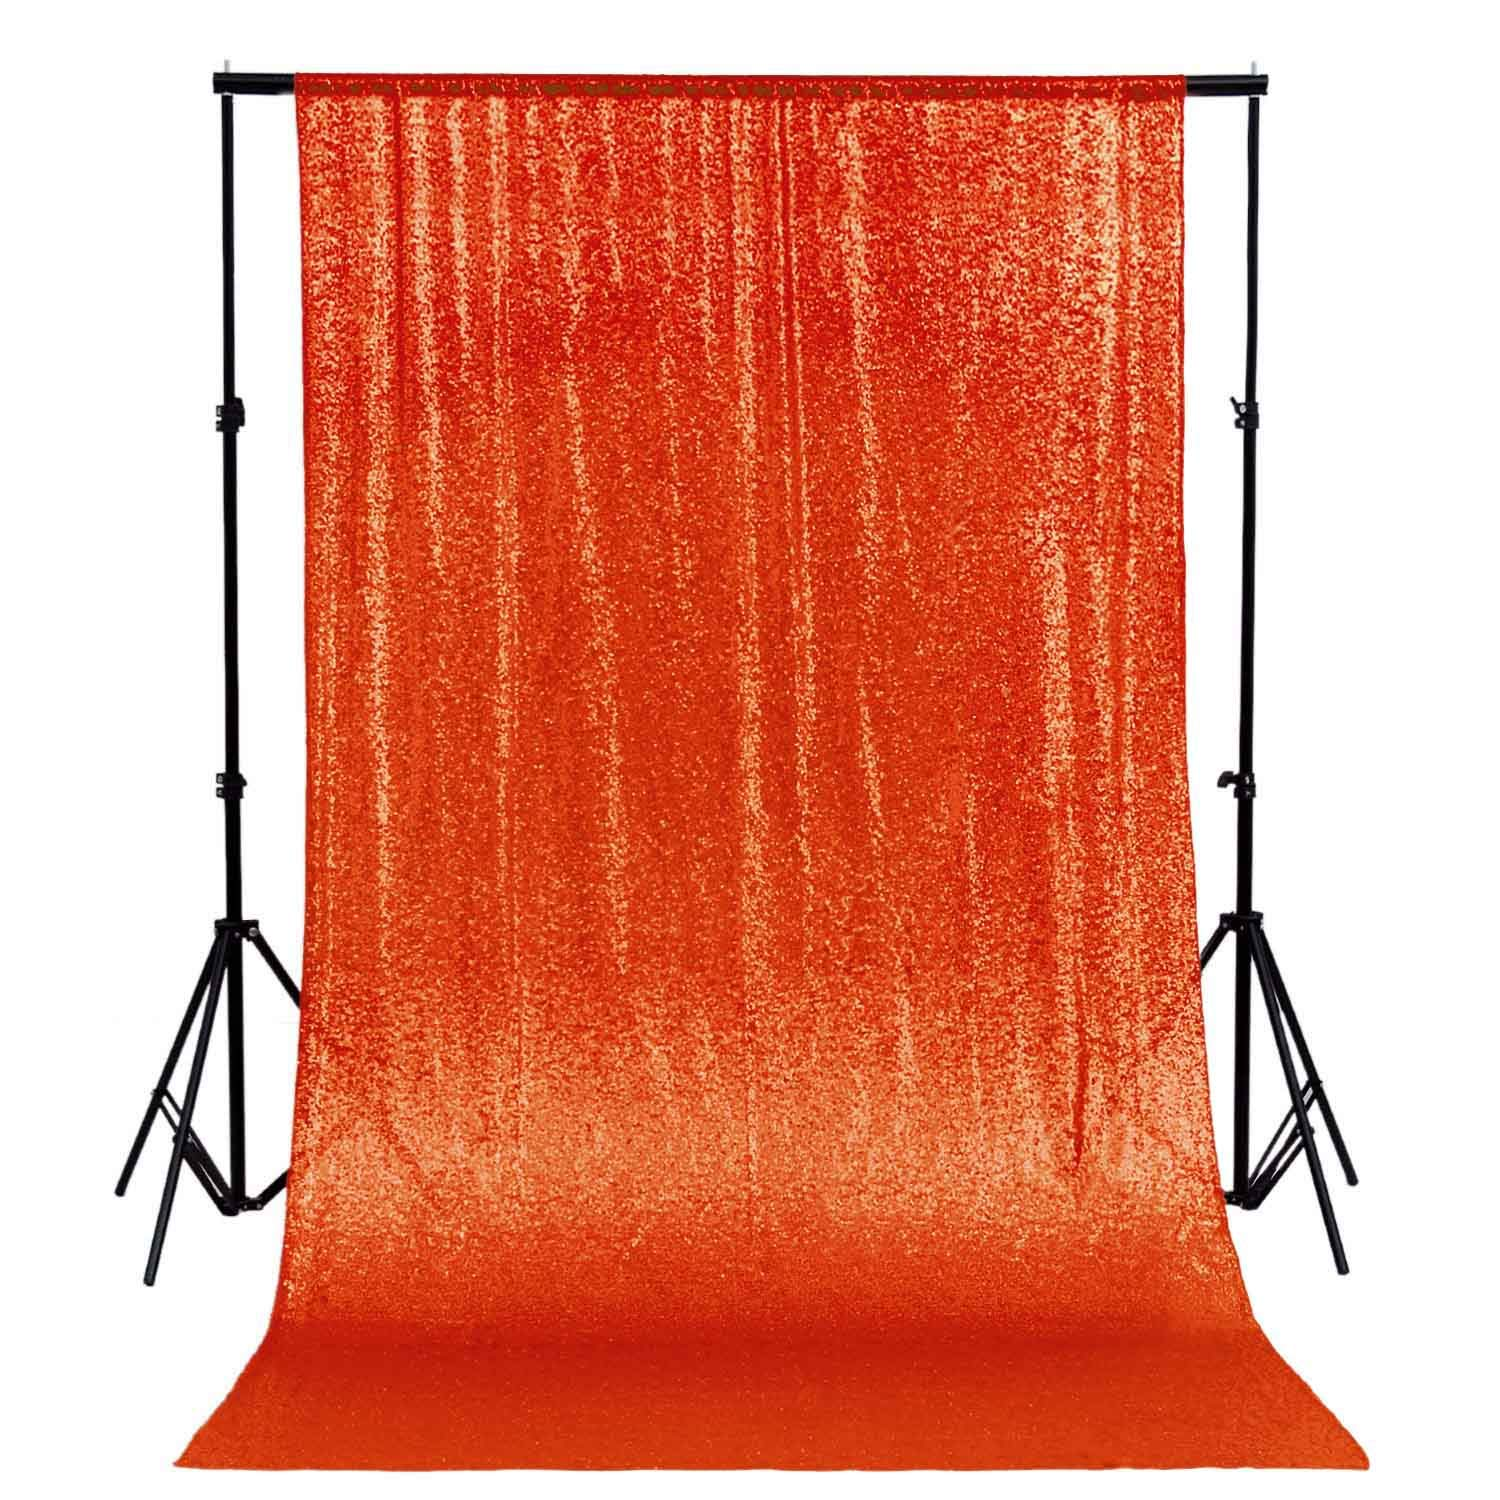 ShinyBeauty Photo Booth Backdrop Best Choice-4FTx6FT- Sequin Photobooth Backdrop for Weddings and Events, Wedding Decoration Fabric, Sparkle Curtain for Backdrop (4FTx6FT, Orange) by ShinyBeauty